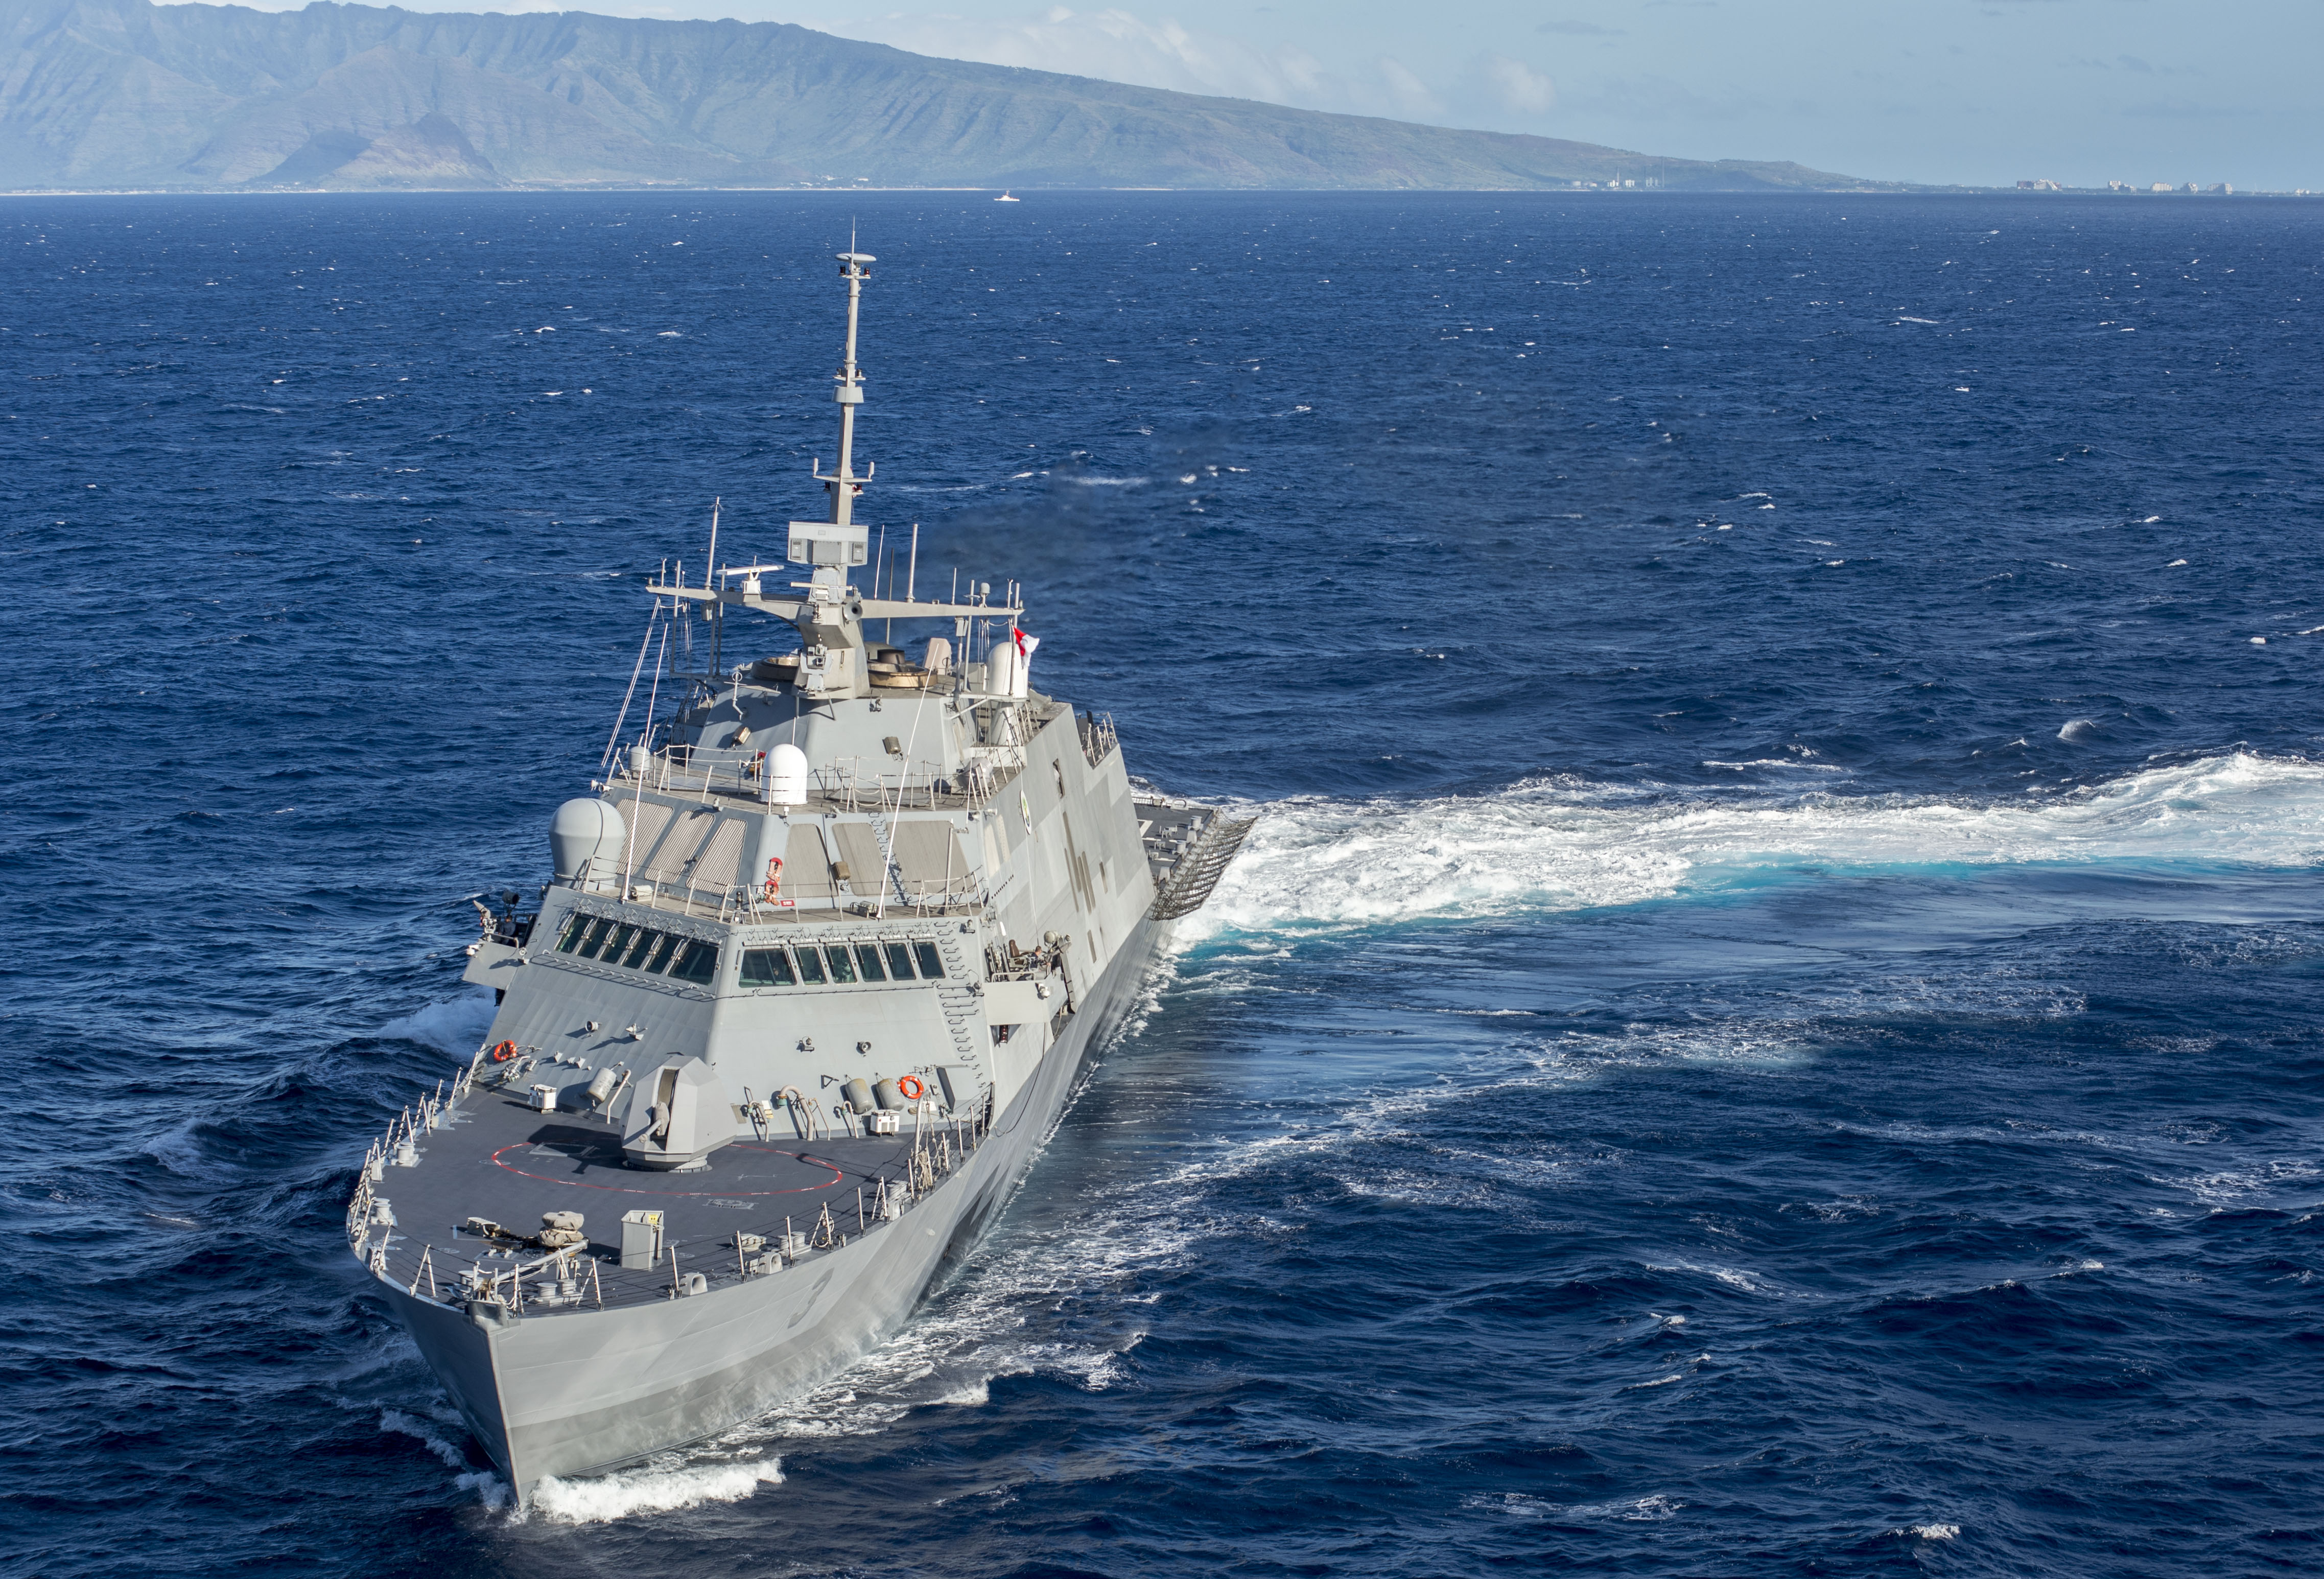 Army 25th Combat Aviation Brigade earns deck landing qualifications abaord Littoral Combat Ship USS Fort Worth (LCS-3)